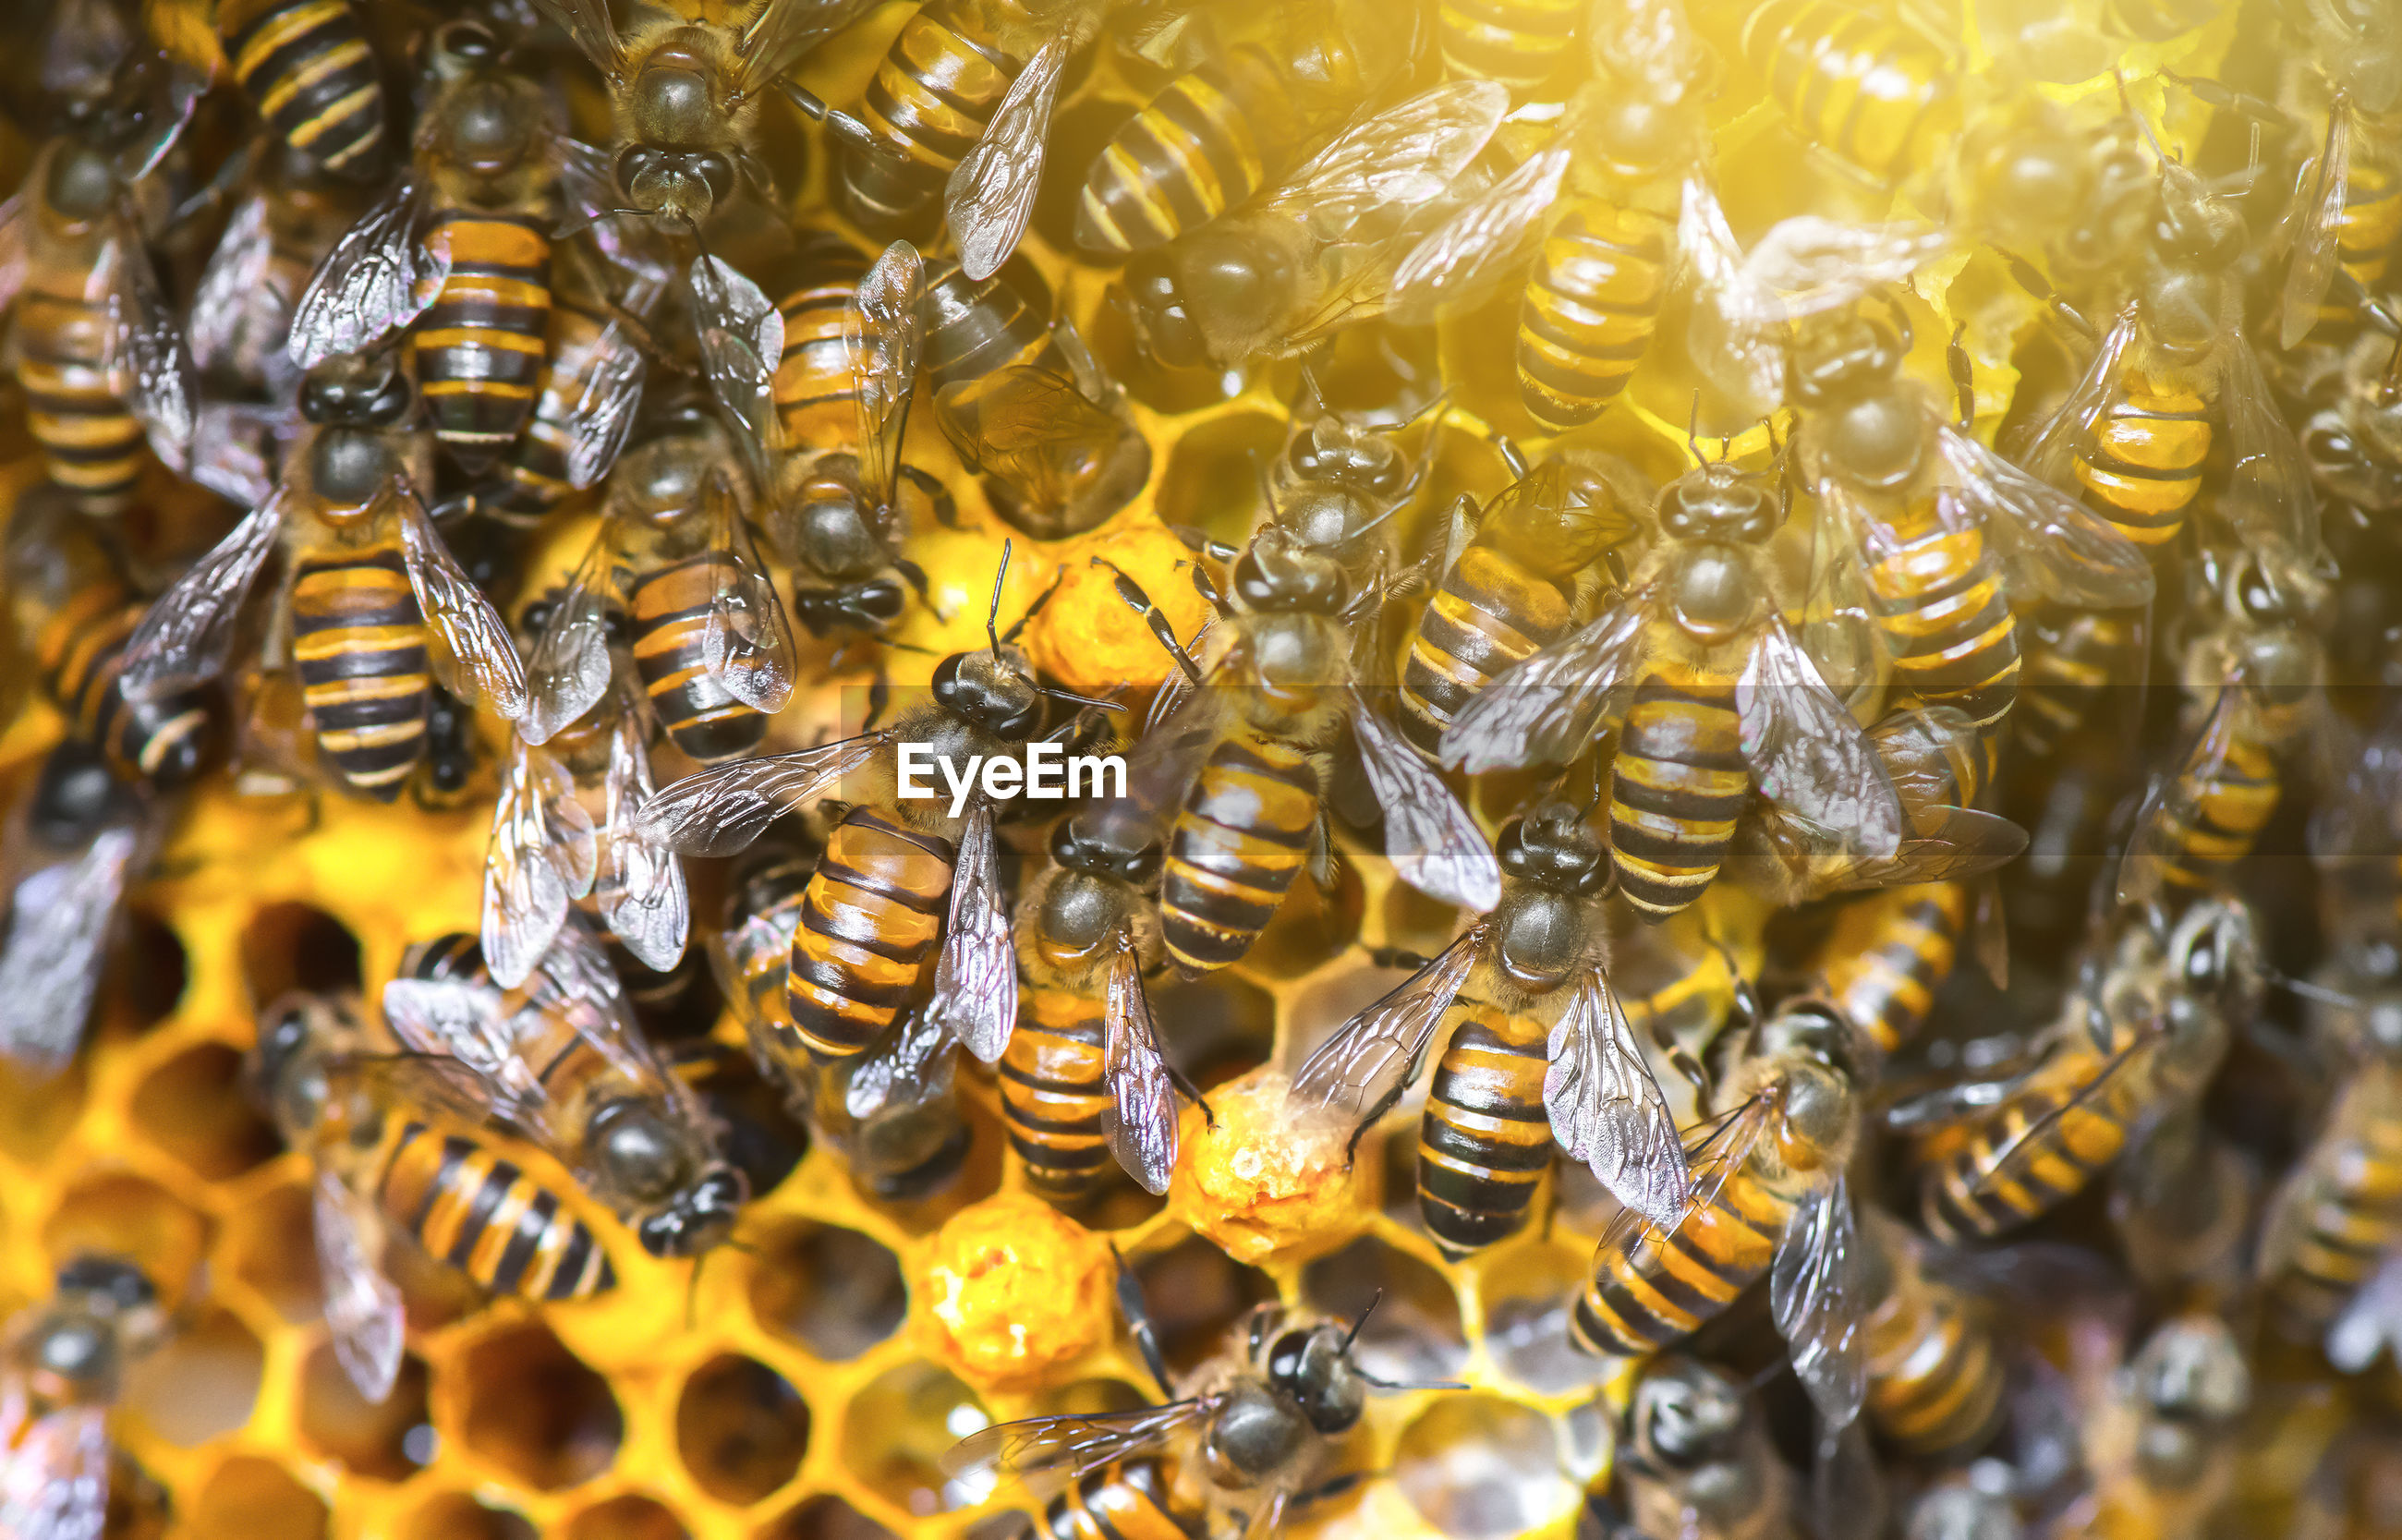 Close-up of bees in honeycomb